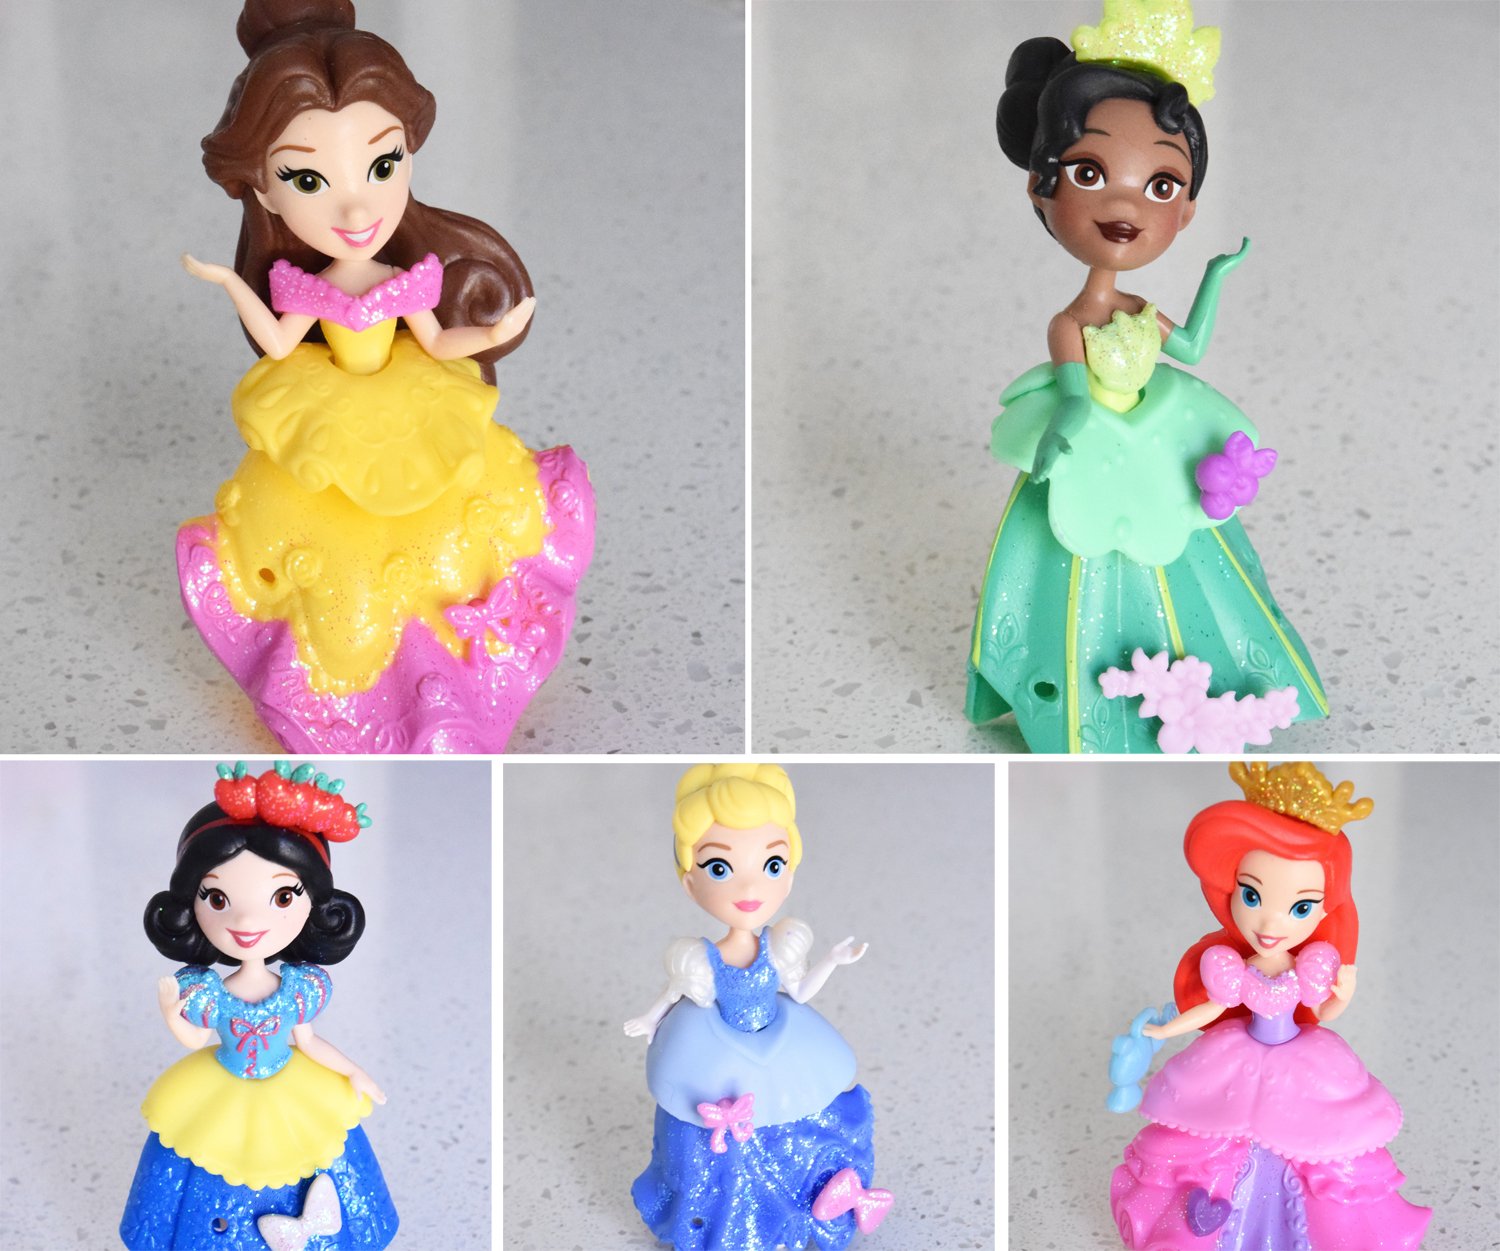 Mini Disney Princess dolls rubber dresses